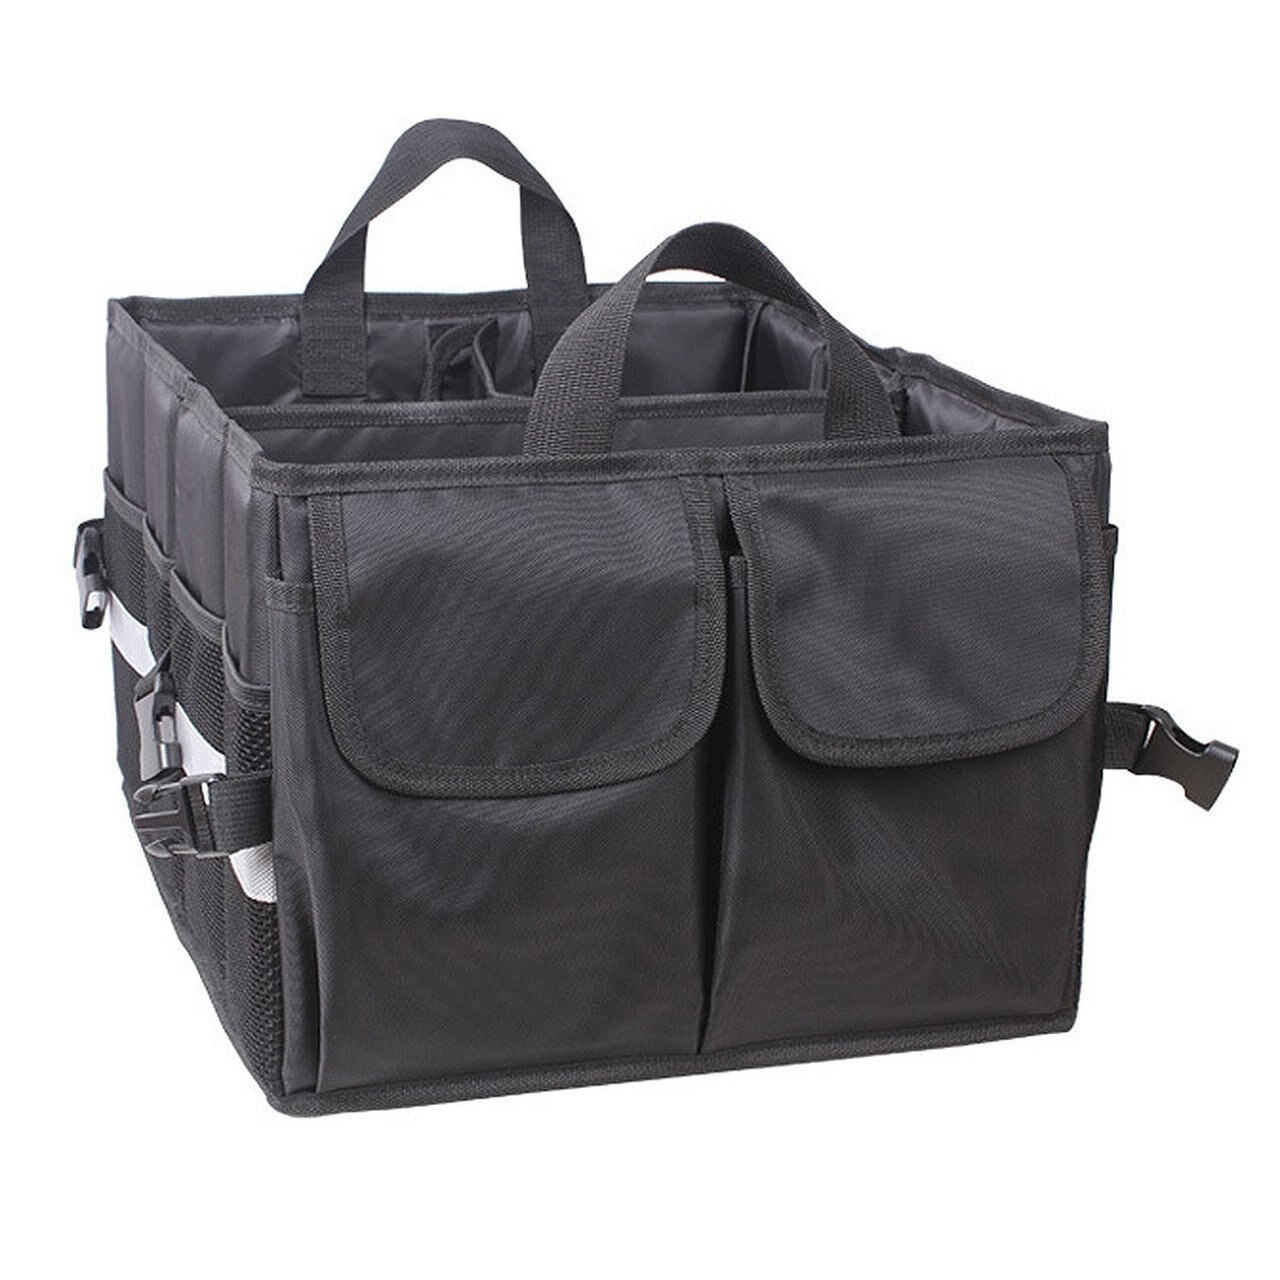 Storage Organizer Bin with Pockets Folding Bag